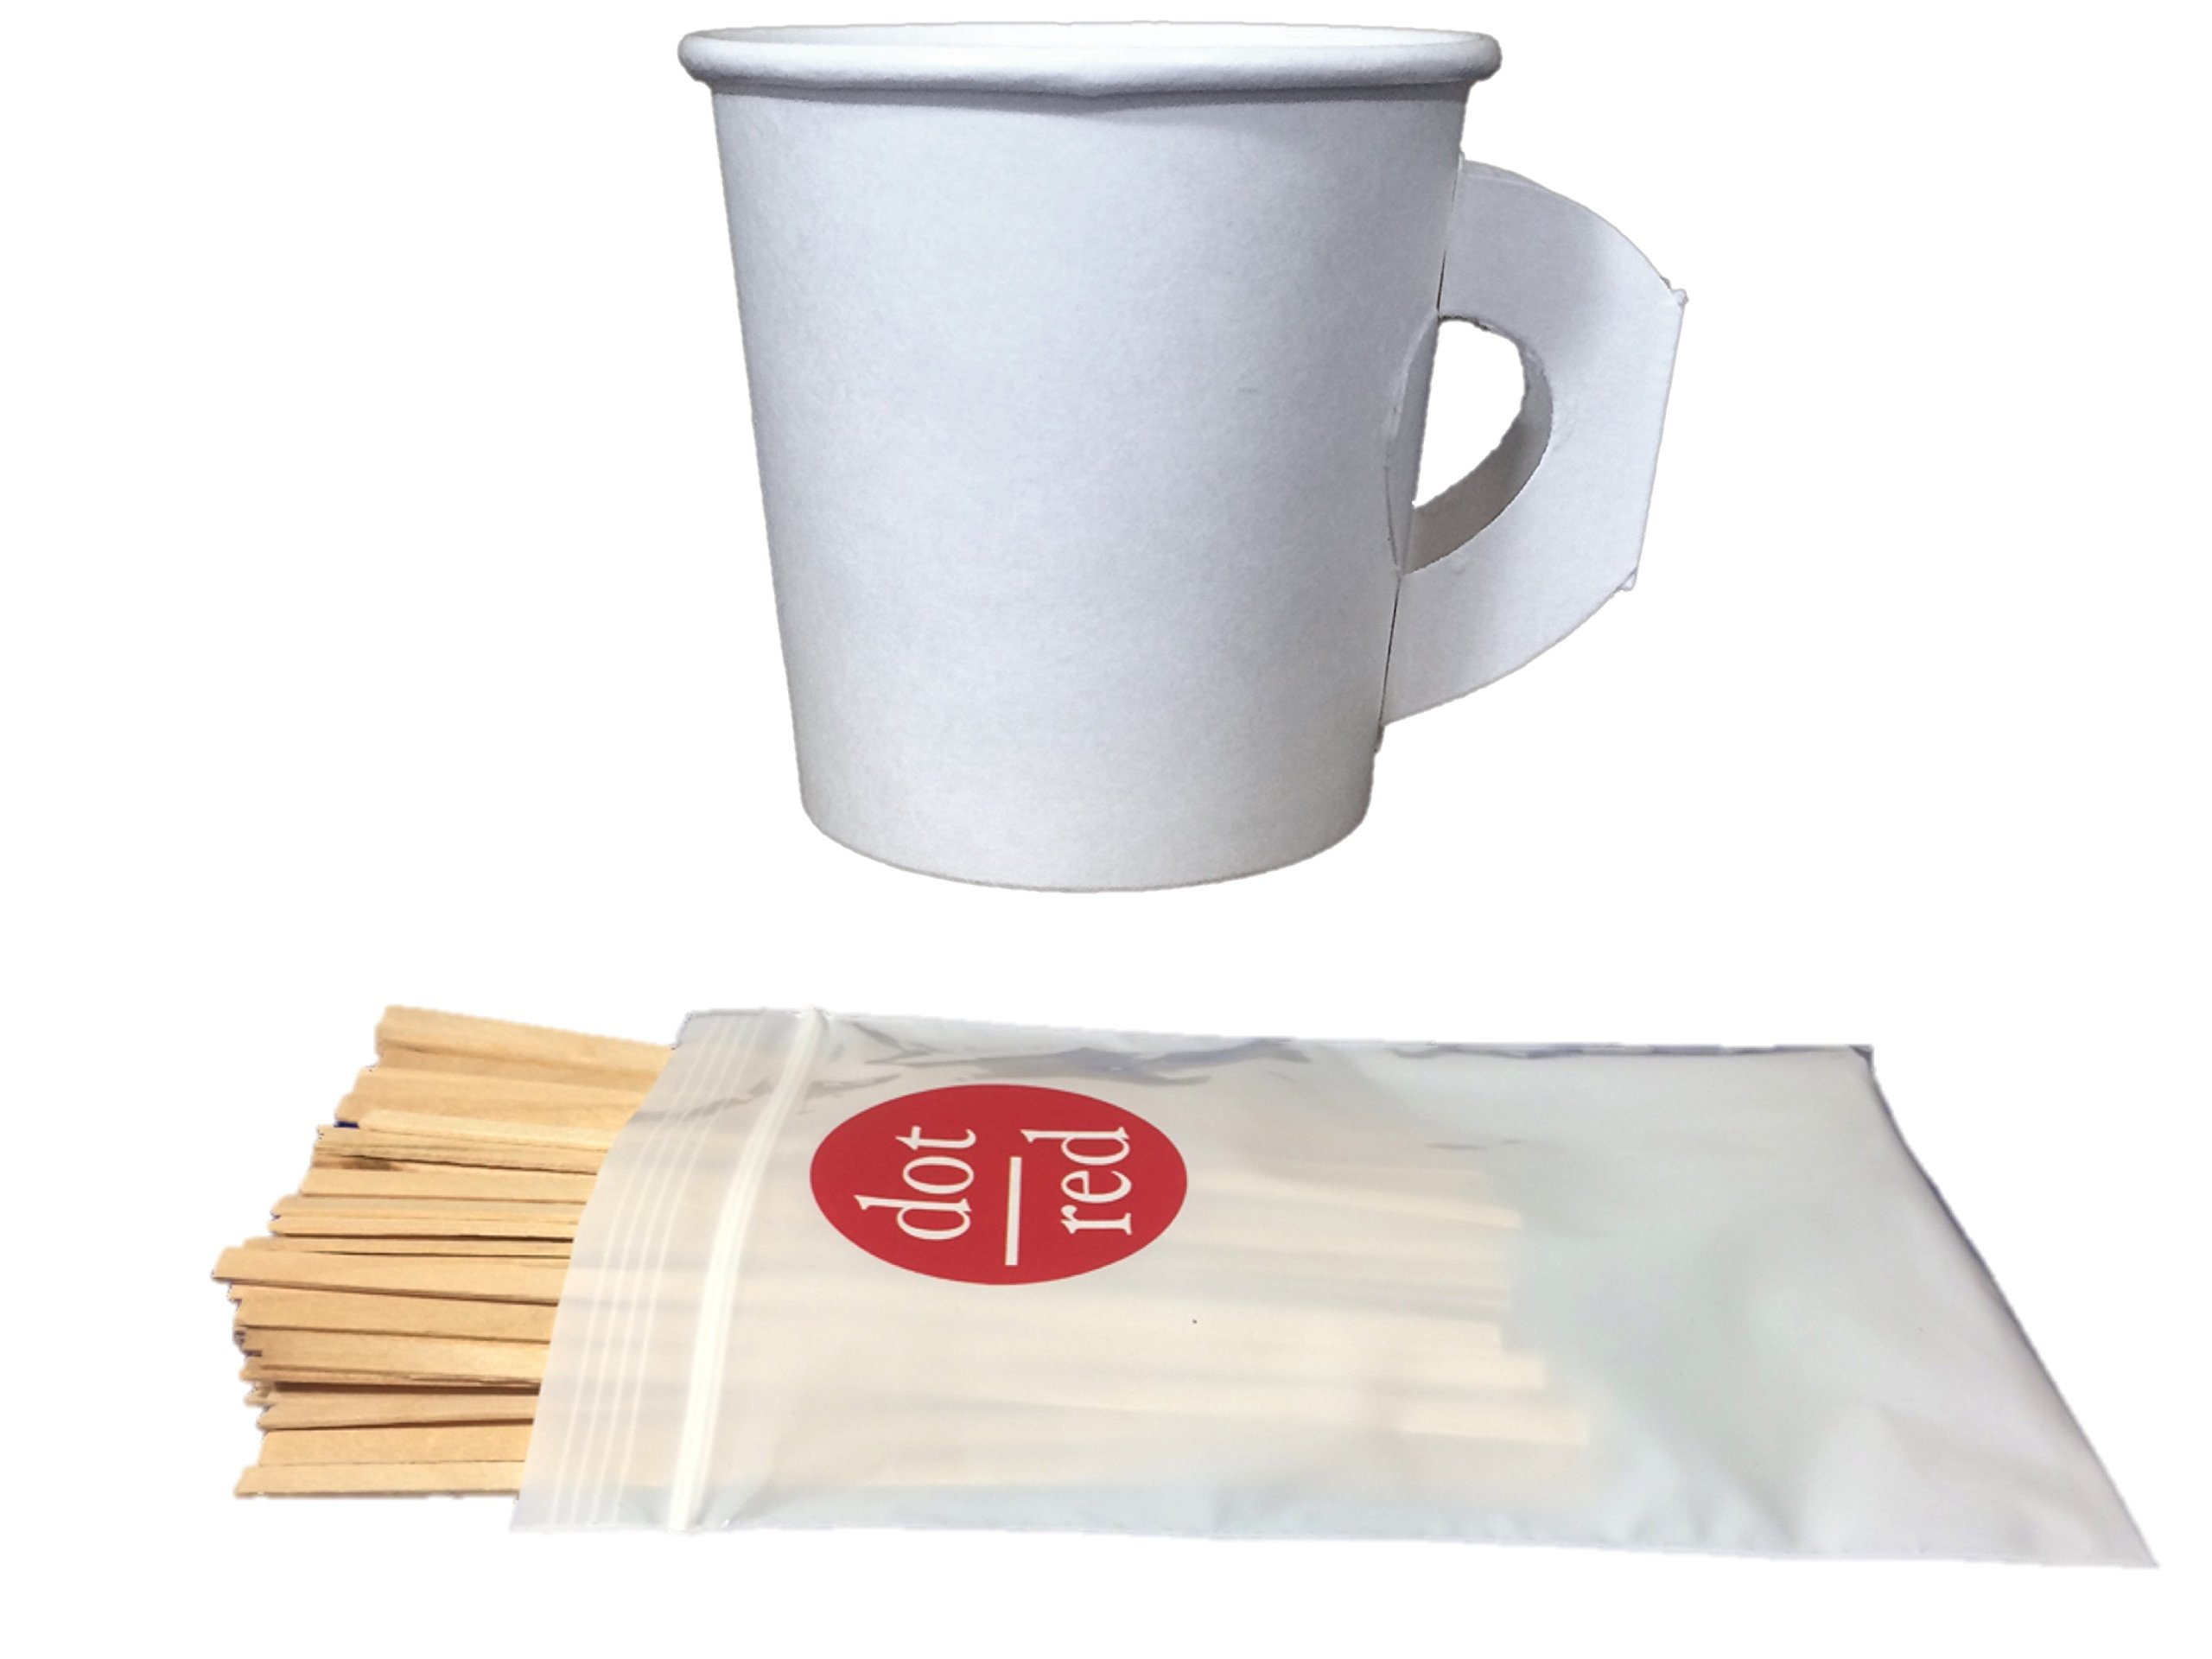 Dot Red - (100 Pack Each) Solo 4 oz. Espresso Cup with Handle (no sleeves needed!) - Leak Resistant Paper Hot Cup 374HW-2050, Dot Red 5.5'' Wood Stirrers - Solo Coffee Cup Bundle (100 Pack) by Dart Container Solo (Image #2)